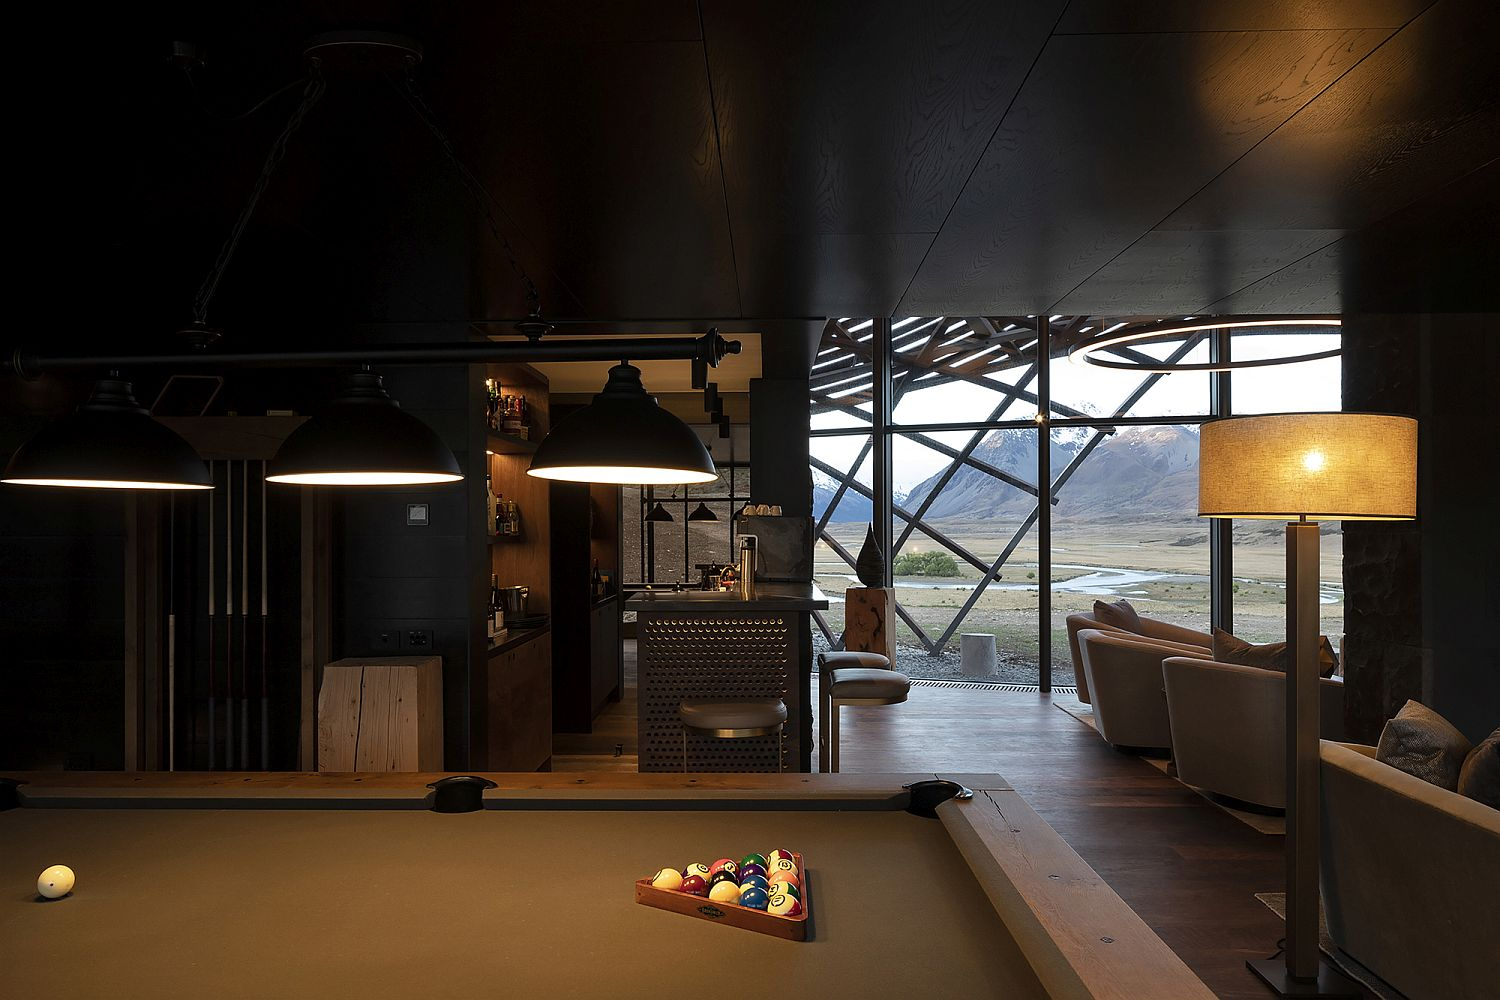 Pool table, bar and living area of the lodge